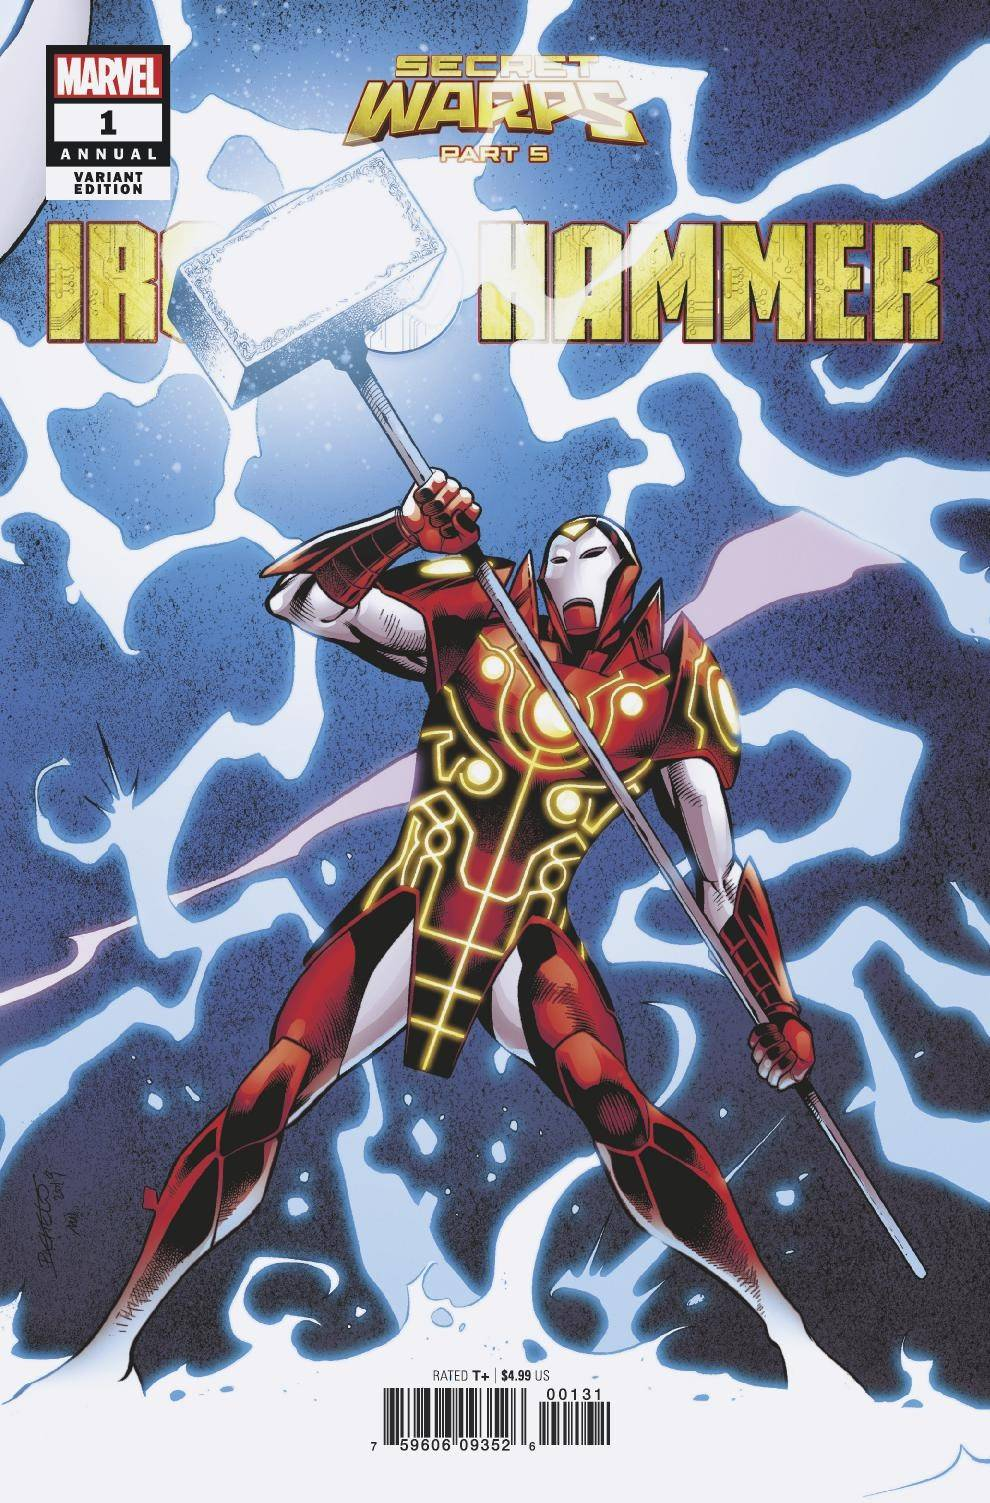 SECRET WARPS IRON HAMMER ANNUAL #1 PACHECO CONNECTING VARIANT 07/31/19 FOC 07/08/19